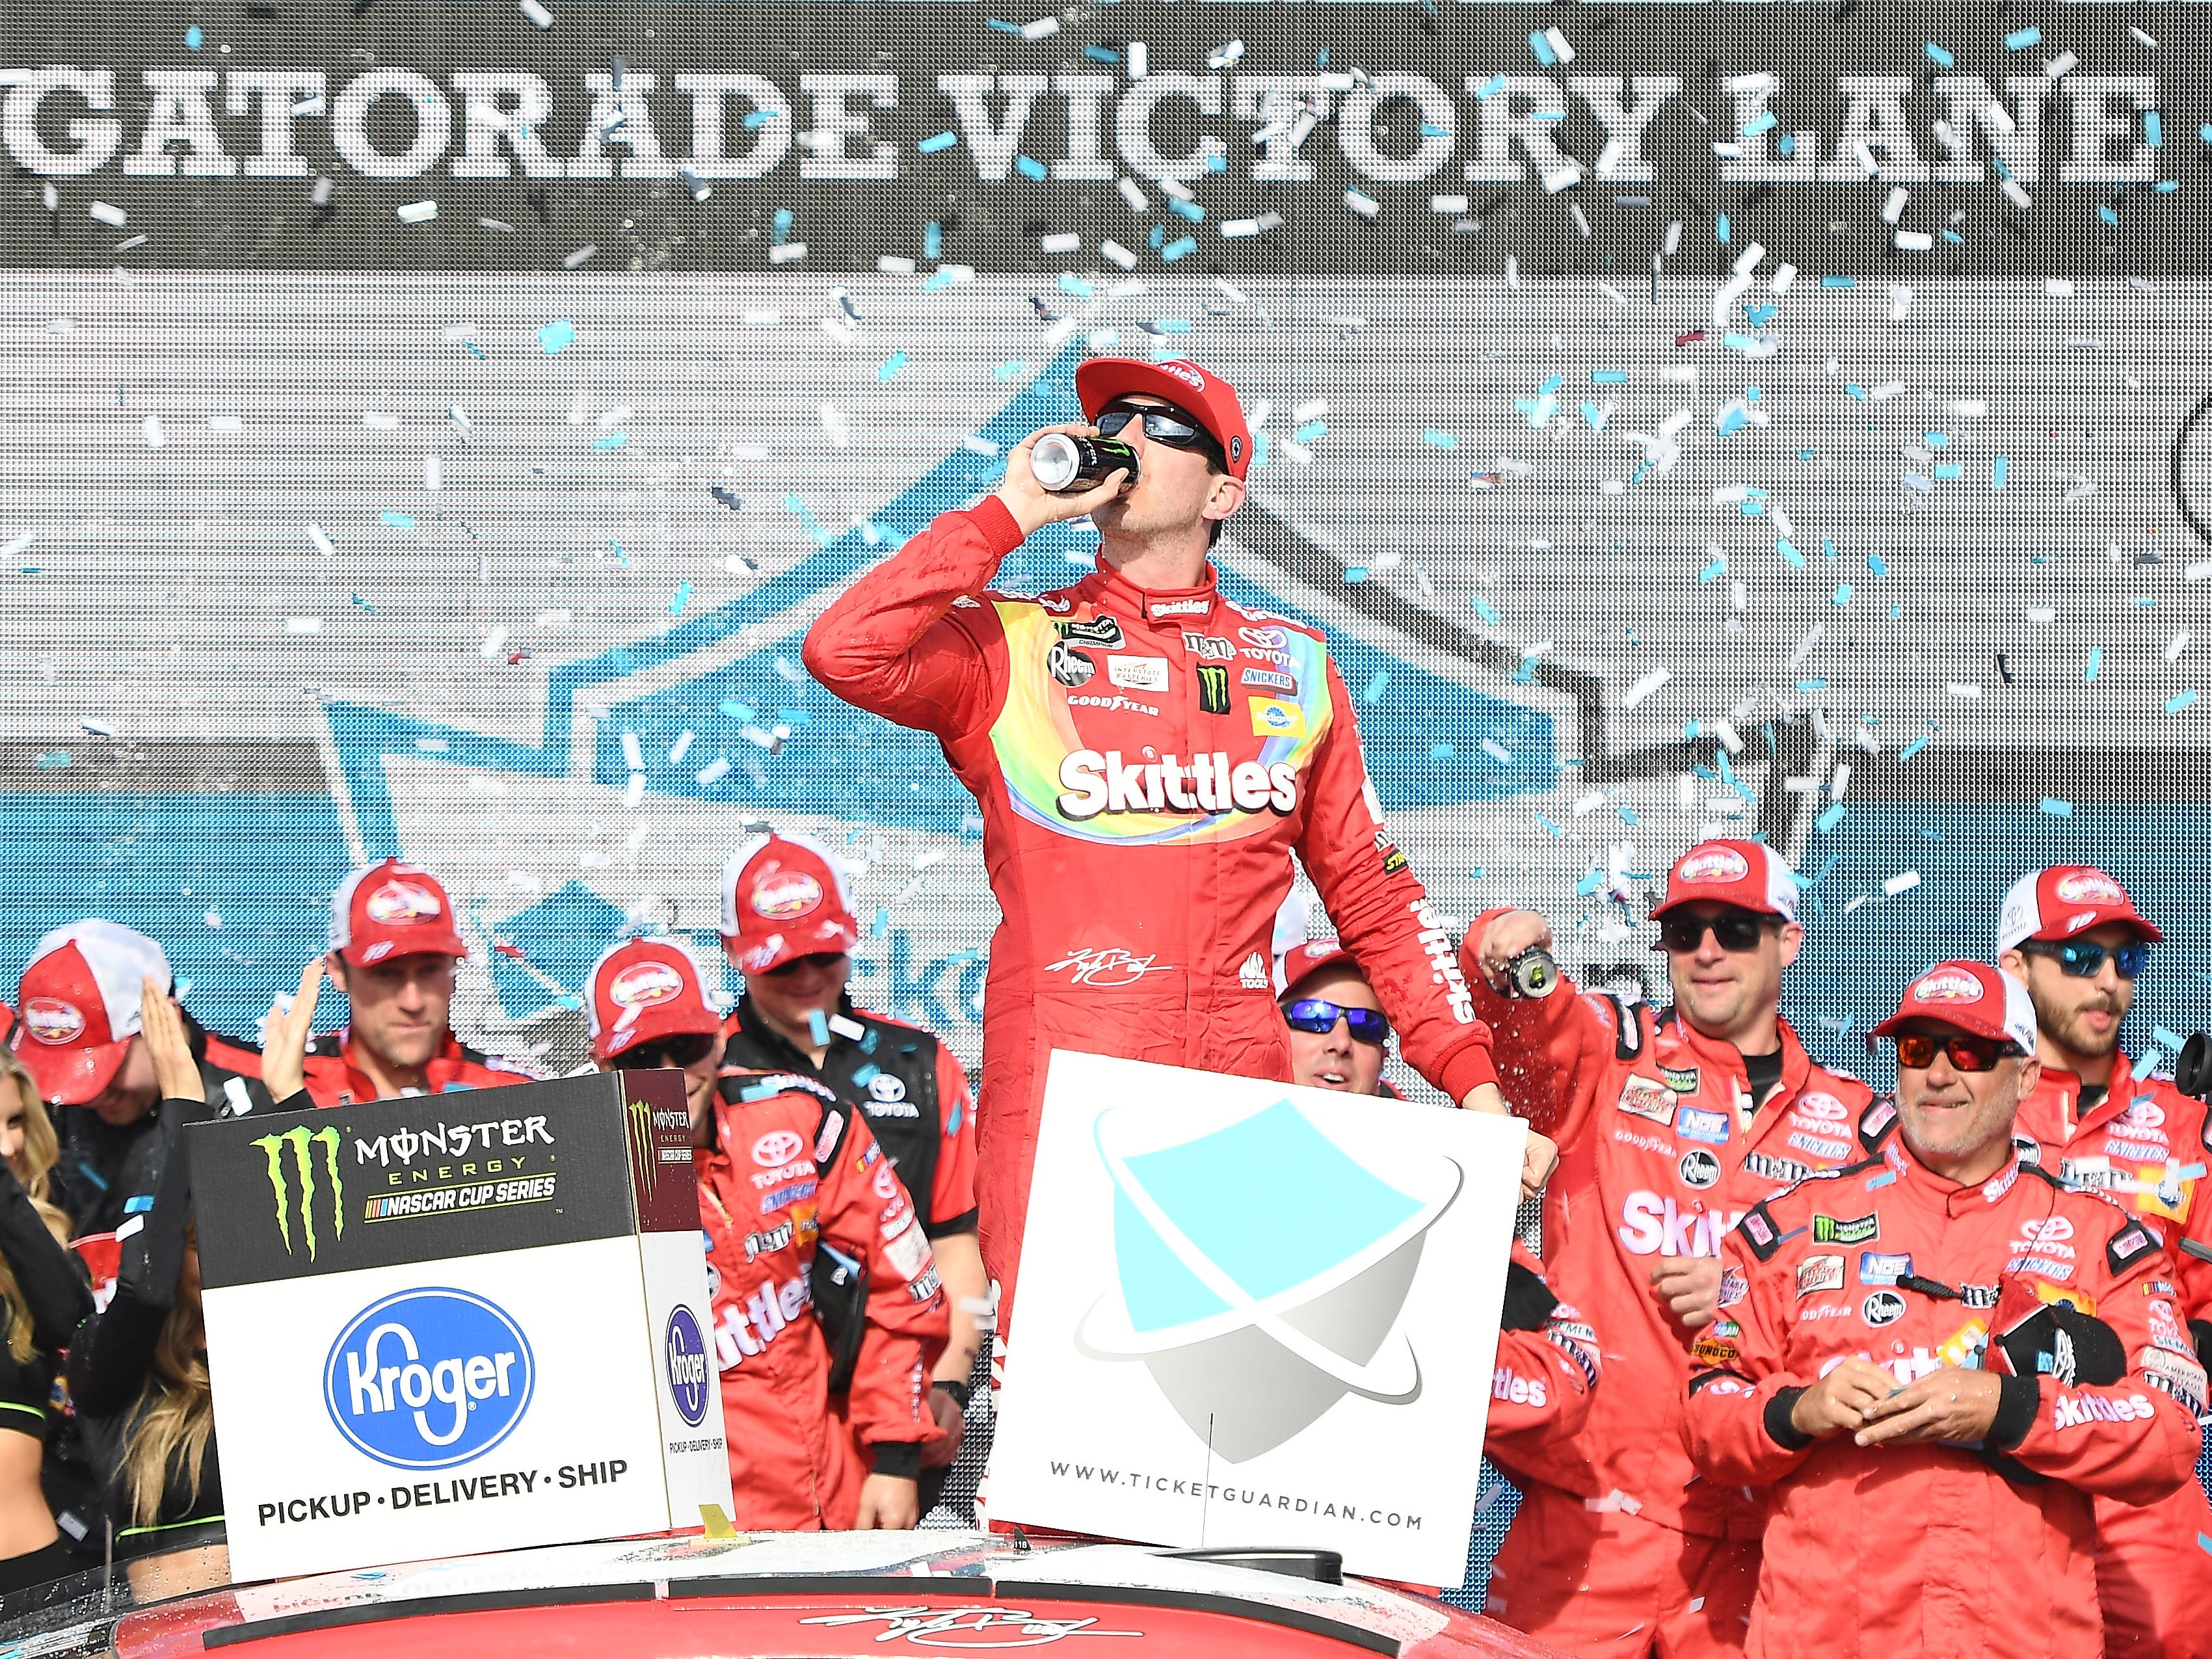 Kyle Busch celebrates after winning a Monster Energy NASCAR Cup Series race at ISM Raceway in Avondale on March 10, 2019.